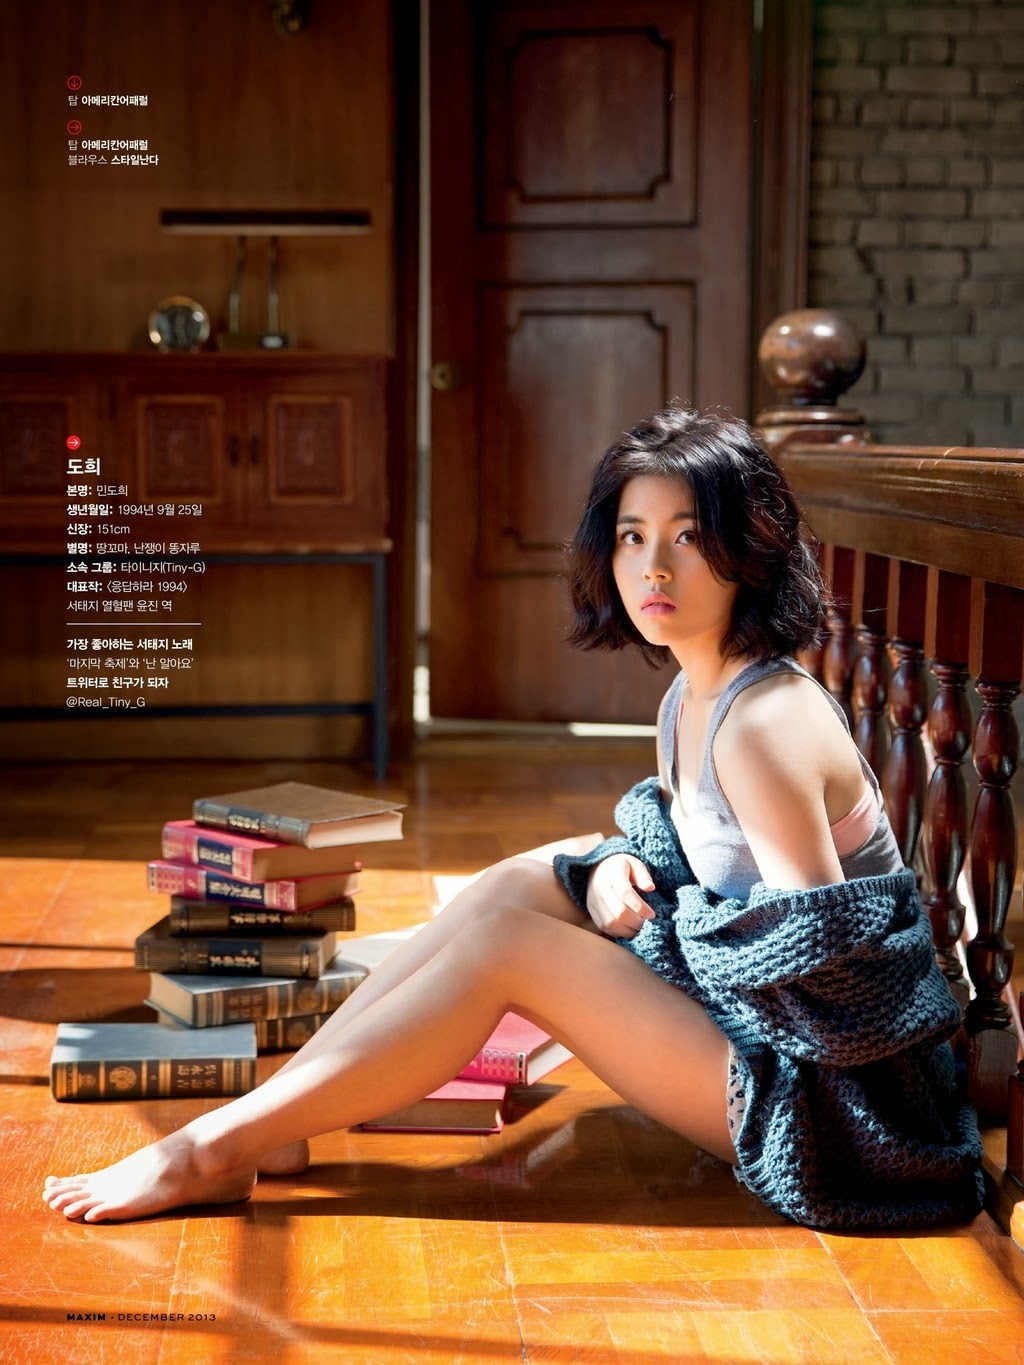 Min Do Hee Tiny- G- Maxim Magazine December Issue 2013